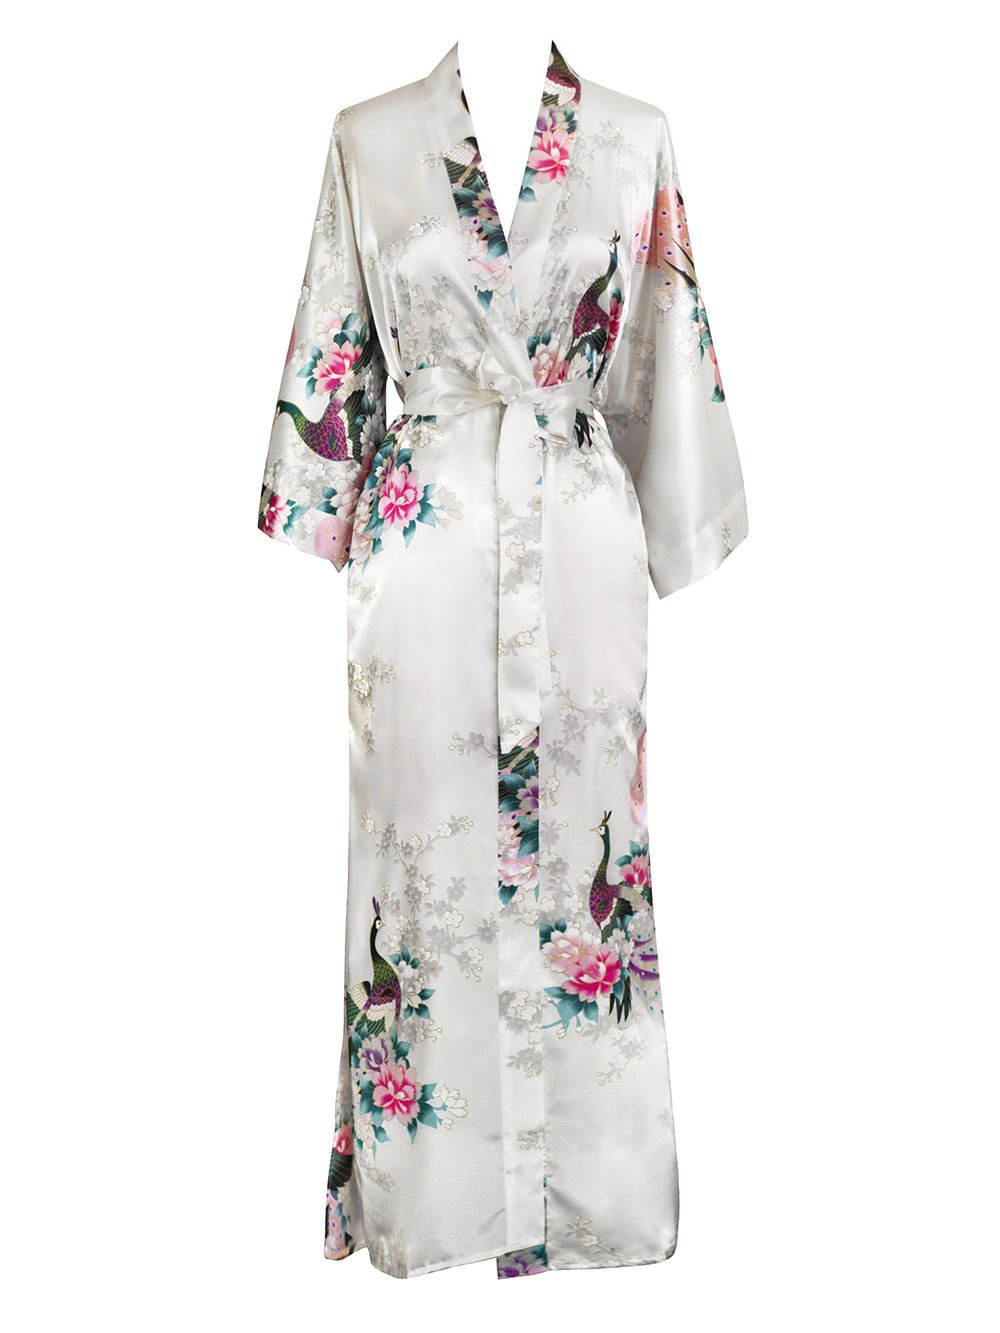 Old Shanghai Women's Kimono Long Robe - Peacock & Blossoms - White,One Size Fits Most